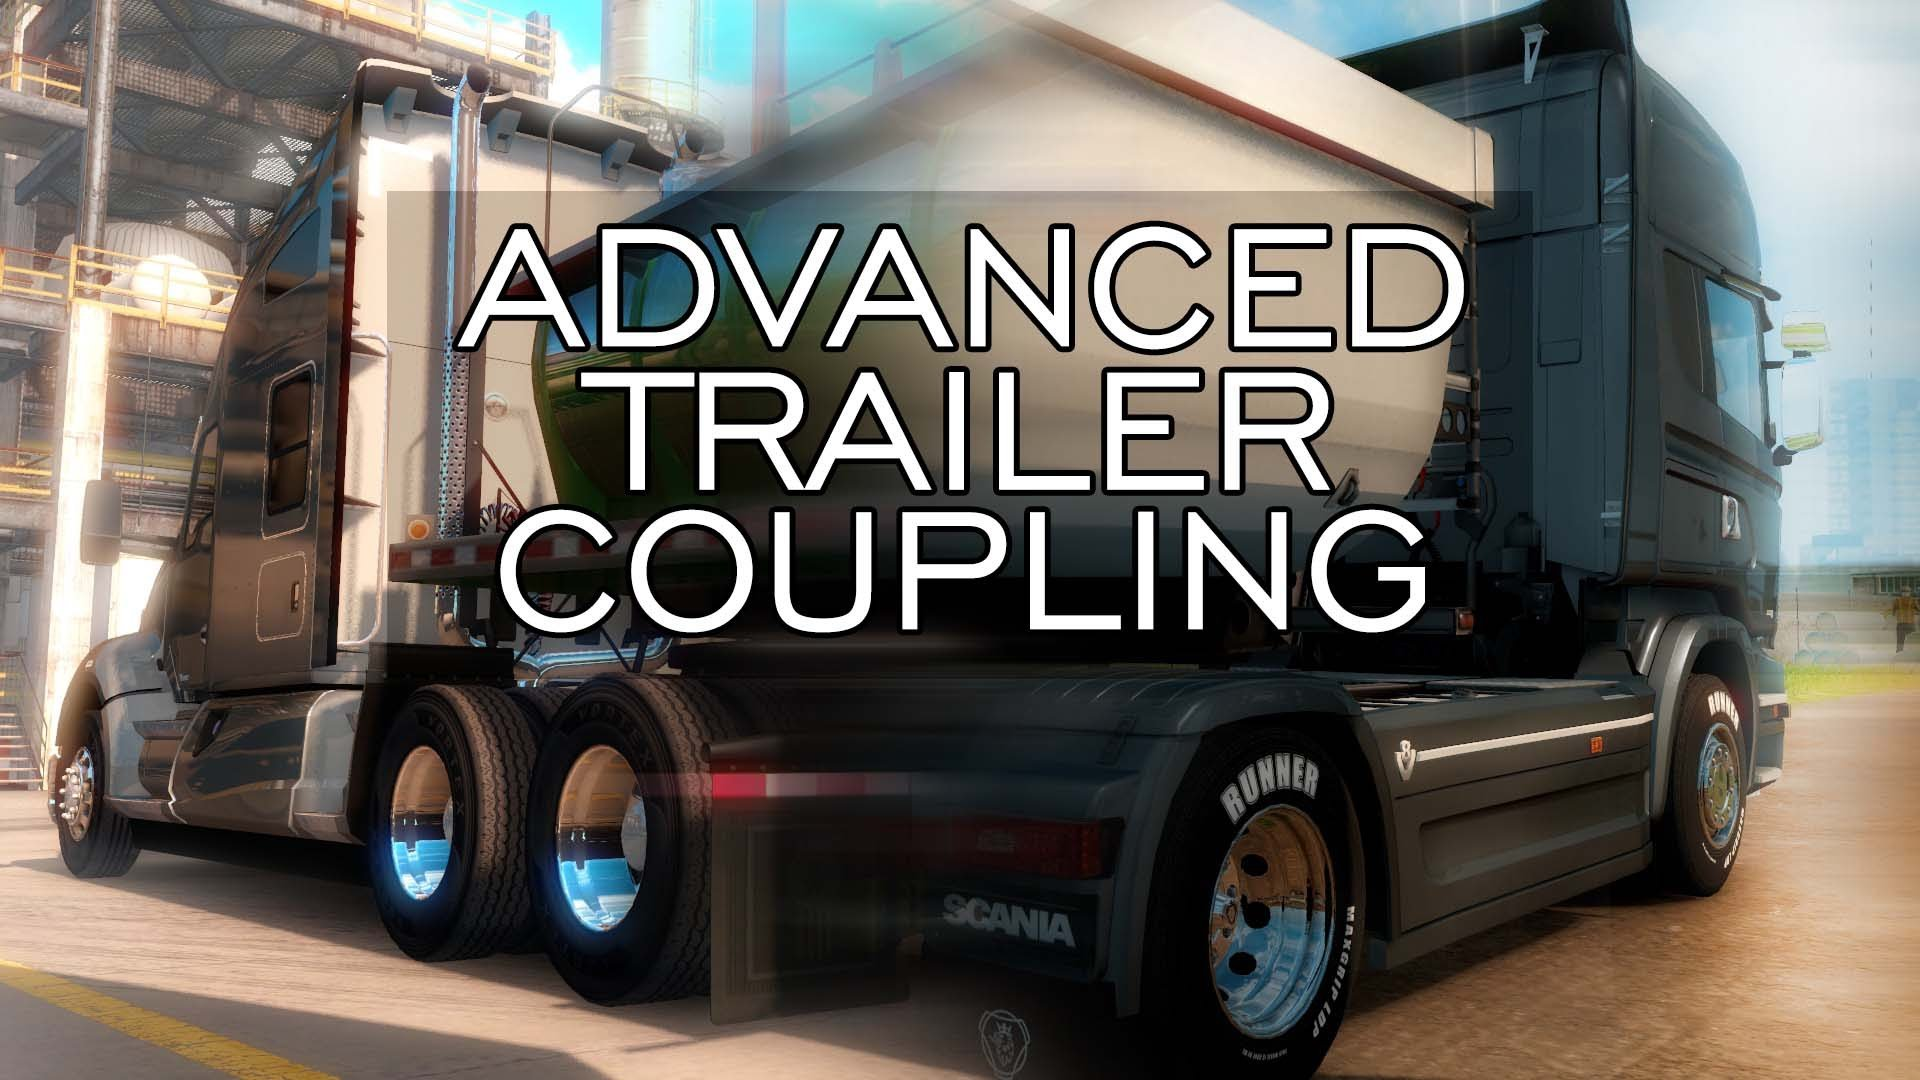 Advanced Trailer Coupling